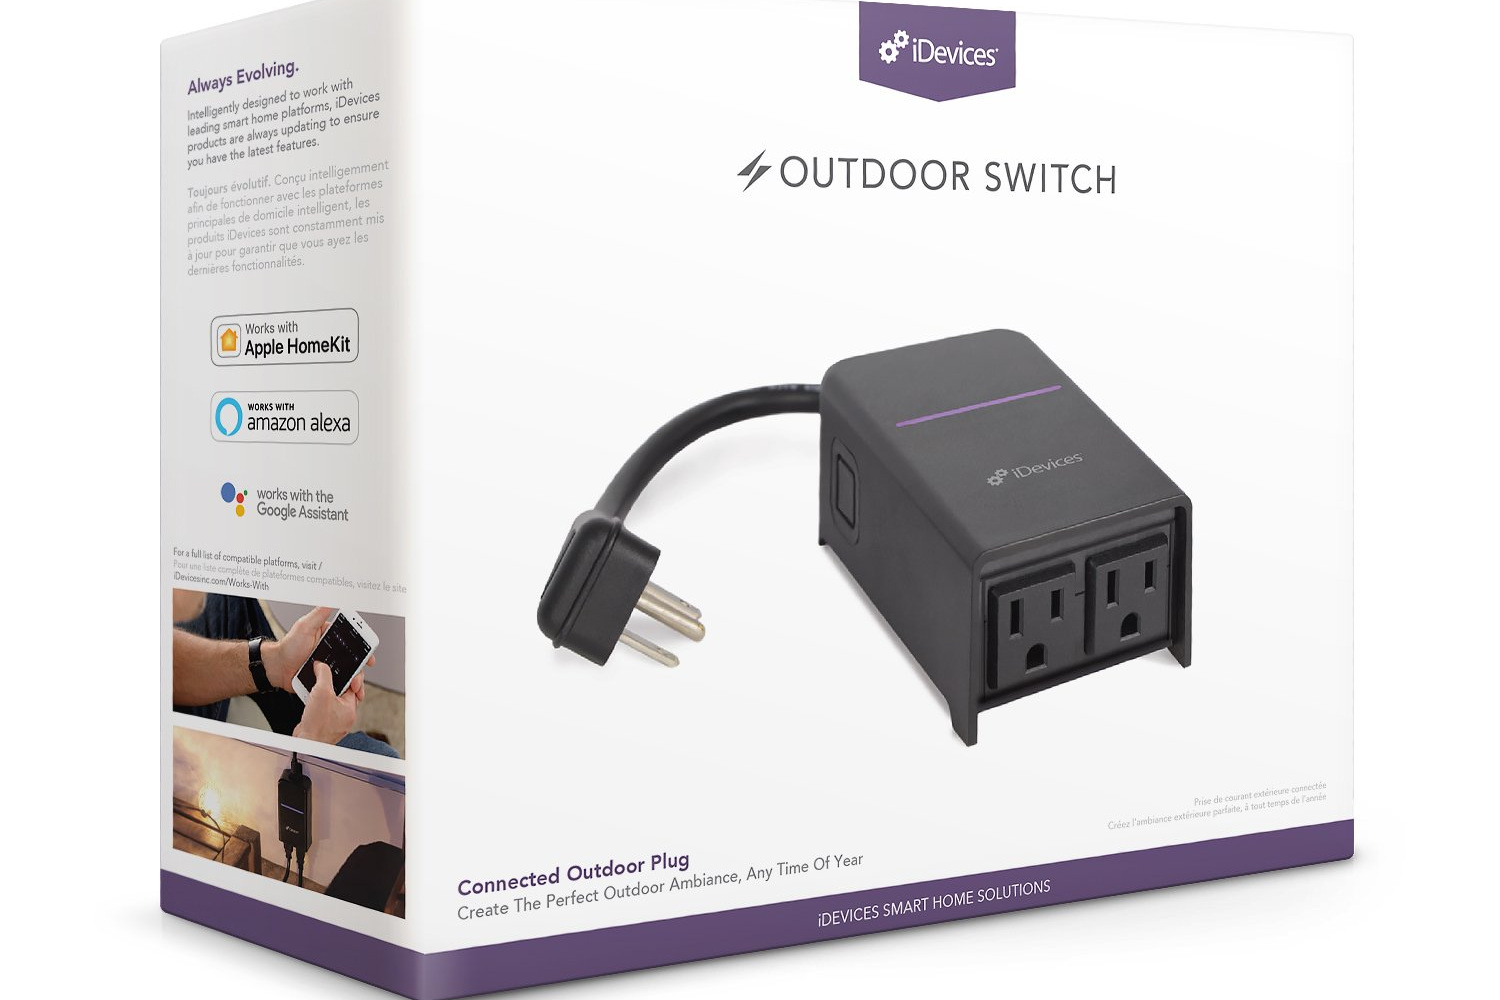 iDevices Outdoor - 120V, 1200W, WiFi, 2 sockets, consumption monitoring, outdoor rated (rain, snow etc)Buy: Amazon, Direct